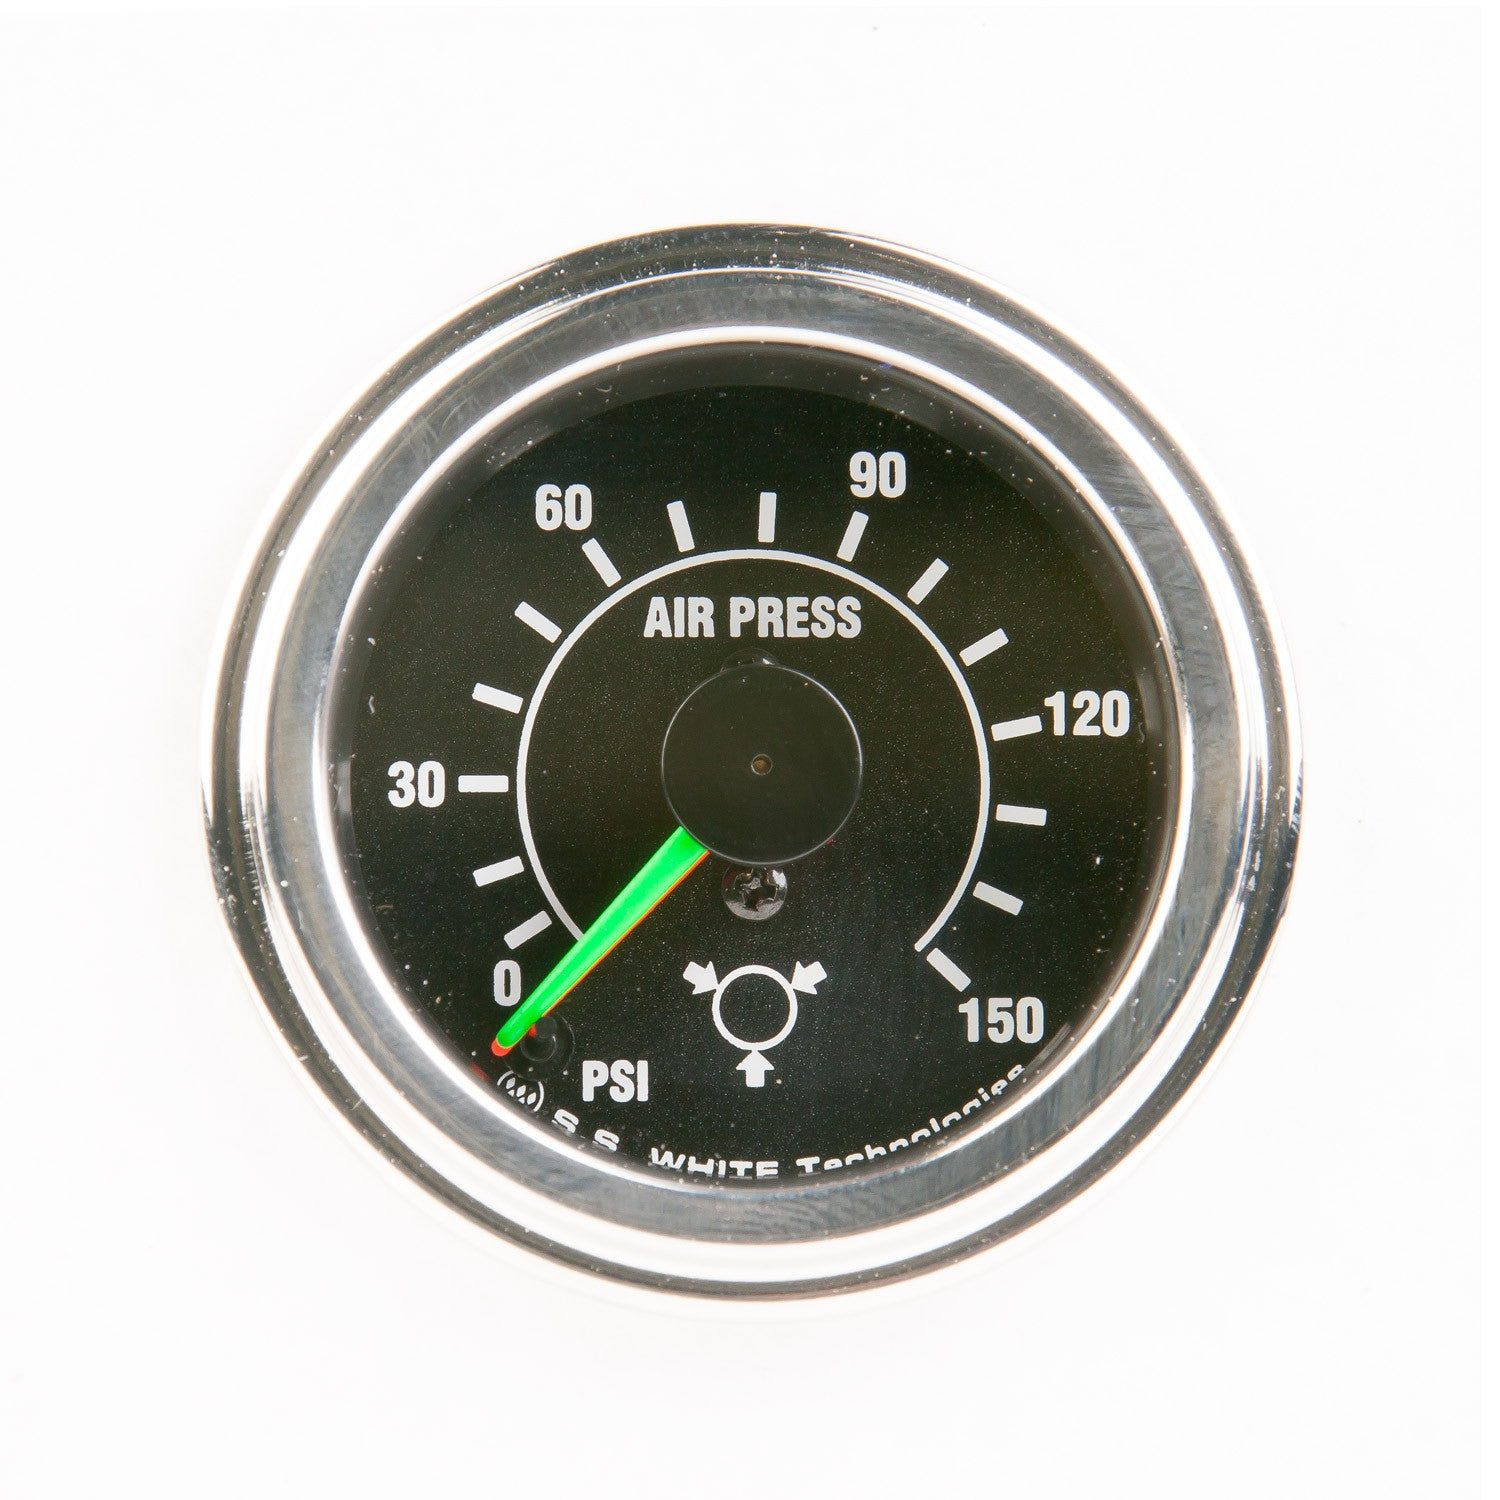 Air pressure gauge record technologies air pressure gauge 0 150 psi record technologies publicscrutiny Image collections